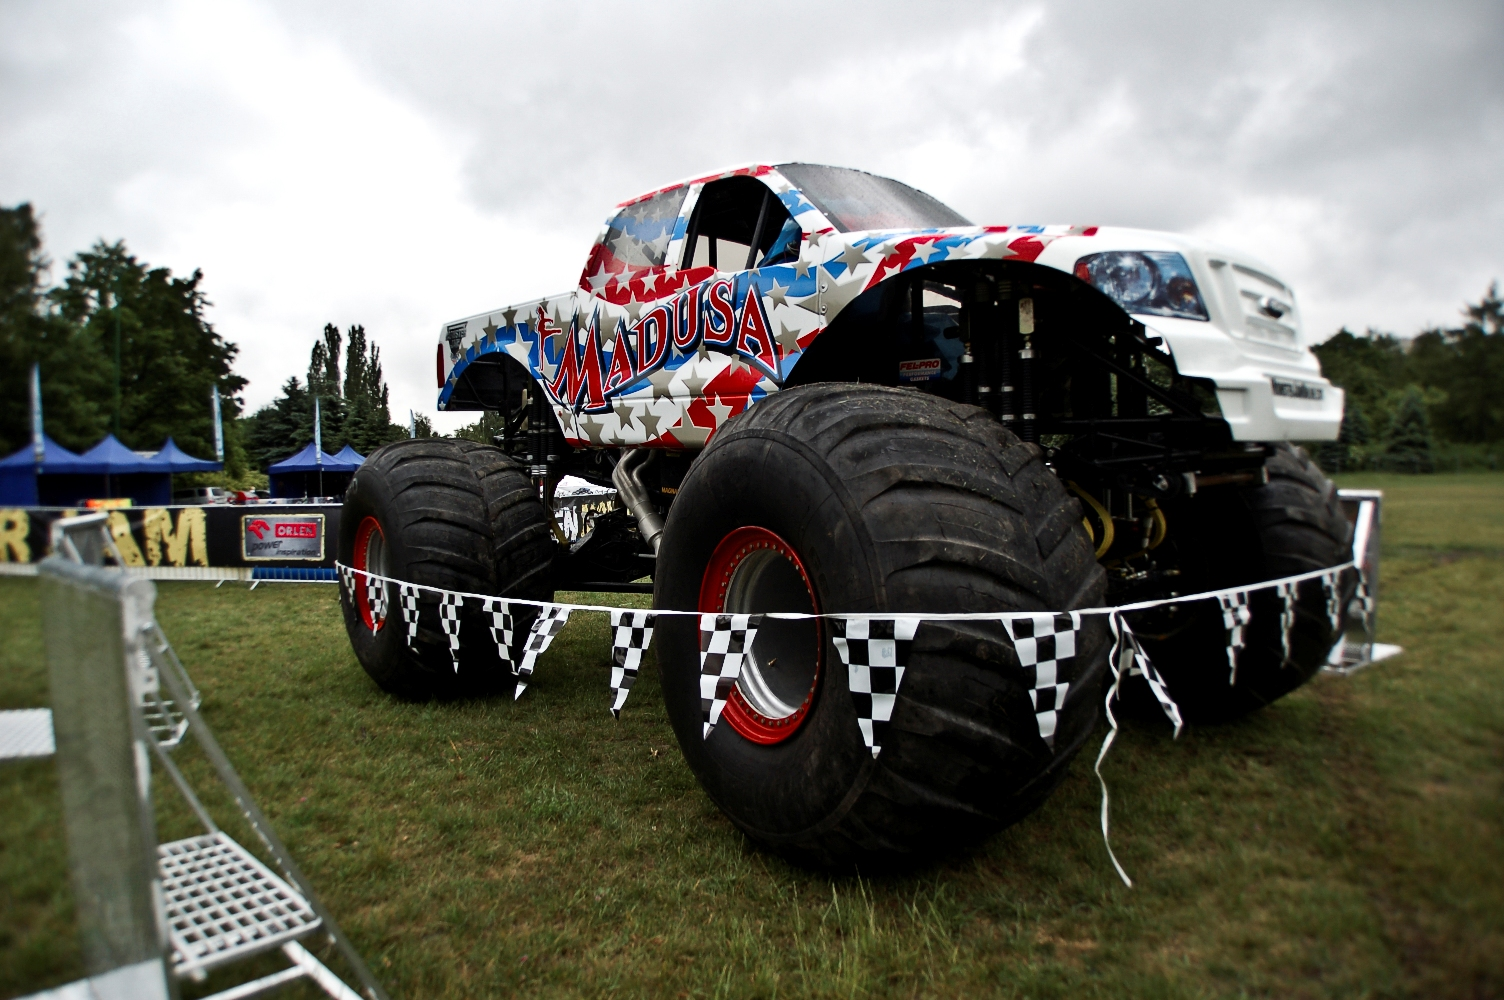 Monster Truck Madusy